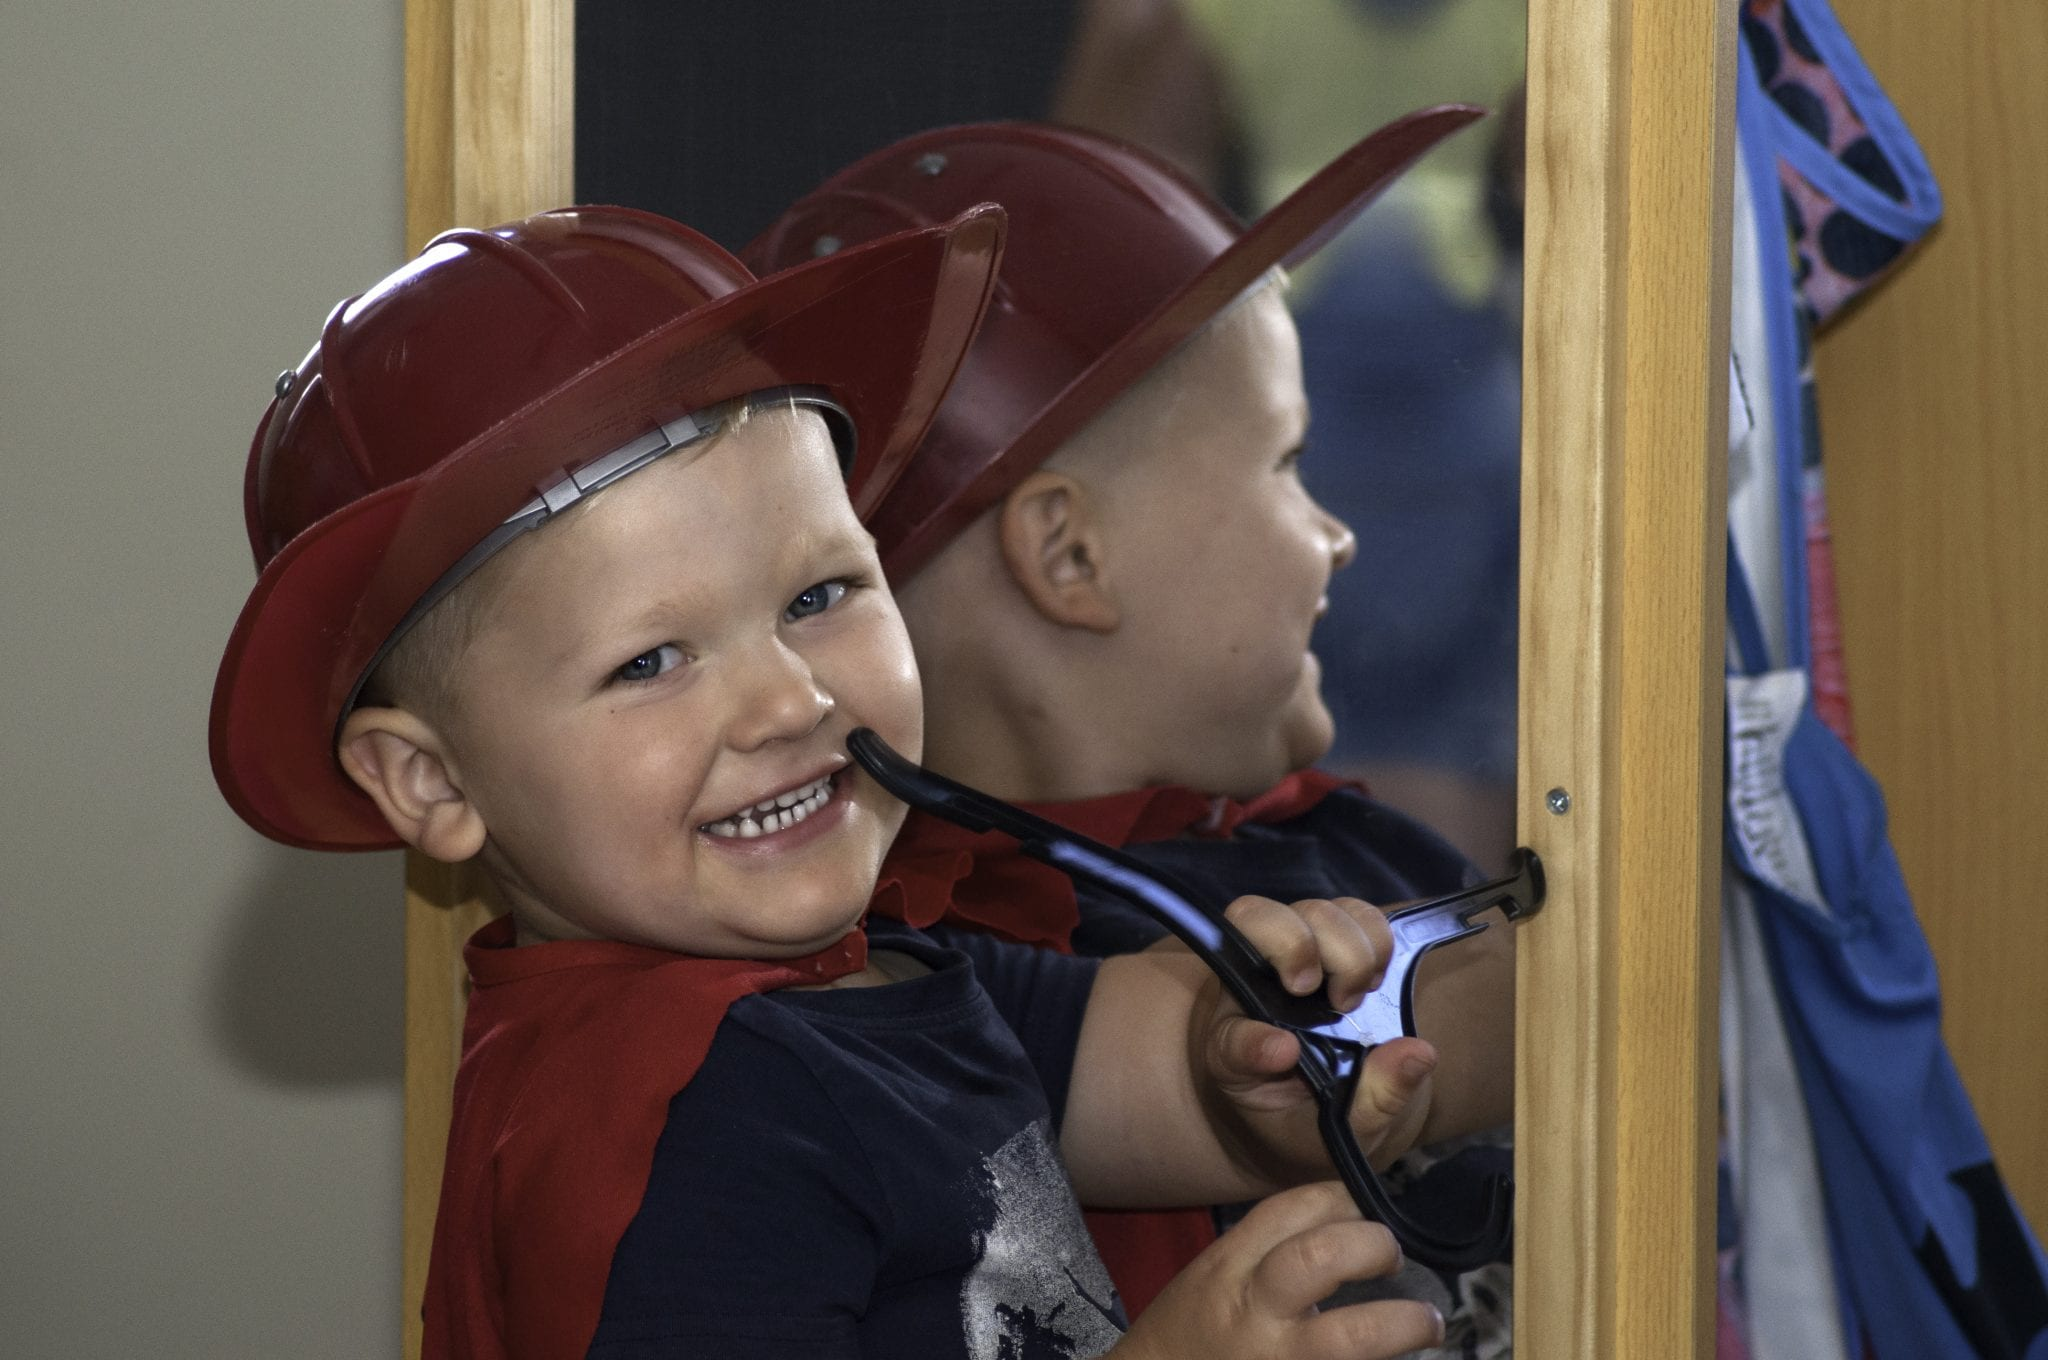 young-boy-with-red-fireman-hat-and-cape-smiling-mirror-in-background